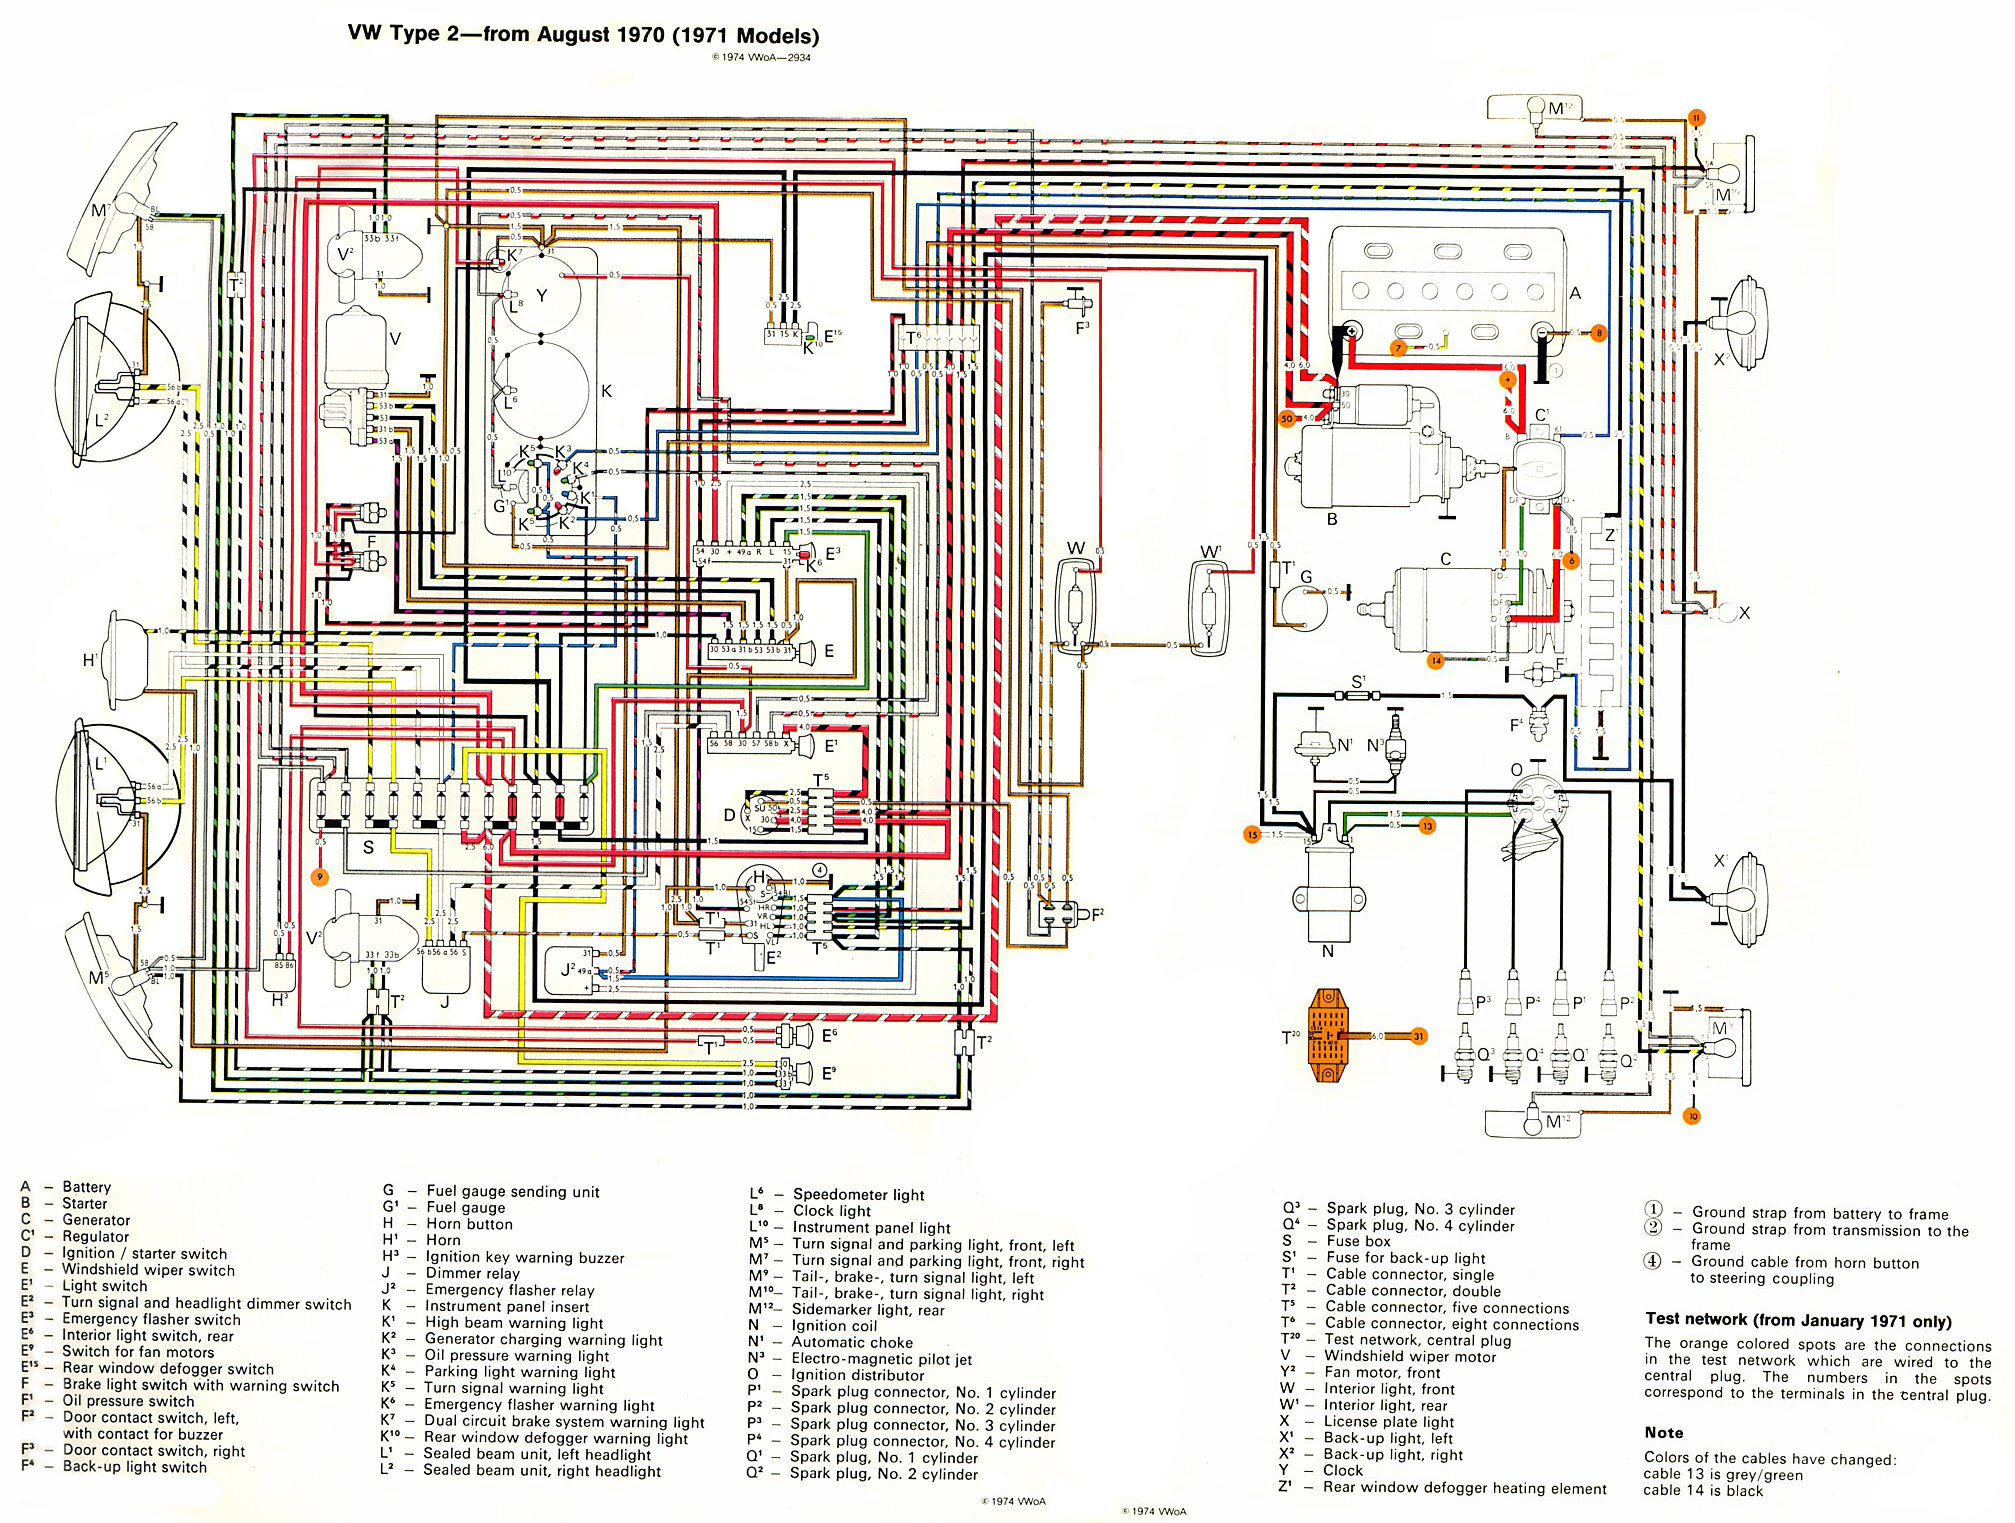 baybus_71_fixed thesamba com type 2 wiring diagrams vw t5 forum wiring diagram at bakdesigns.co